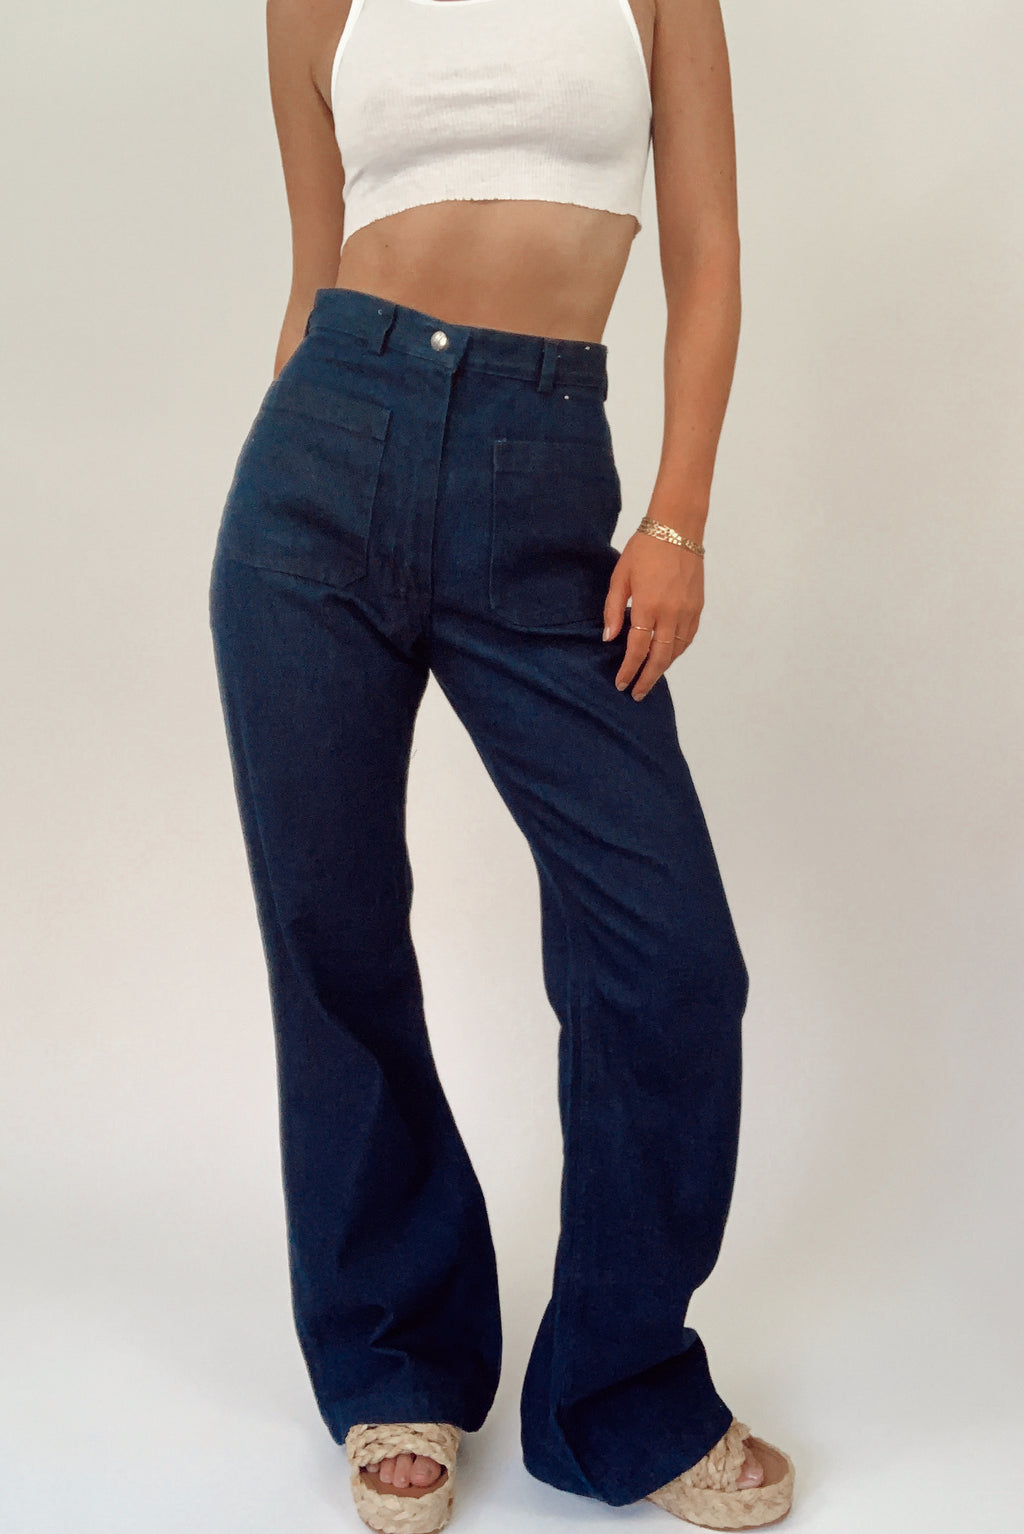 Dark Wash Seafarer Bell Bottoms (26)